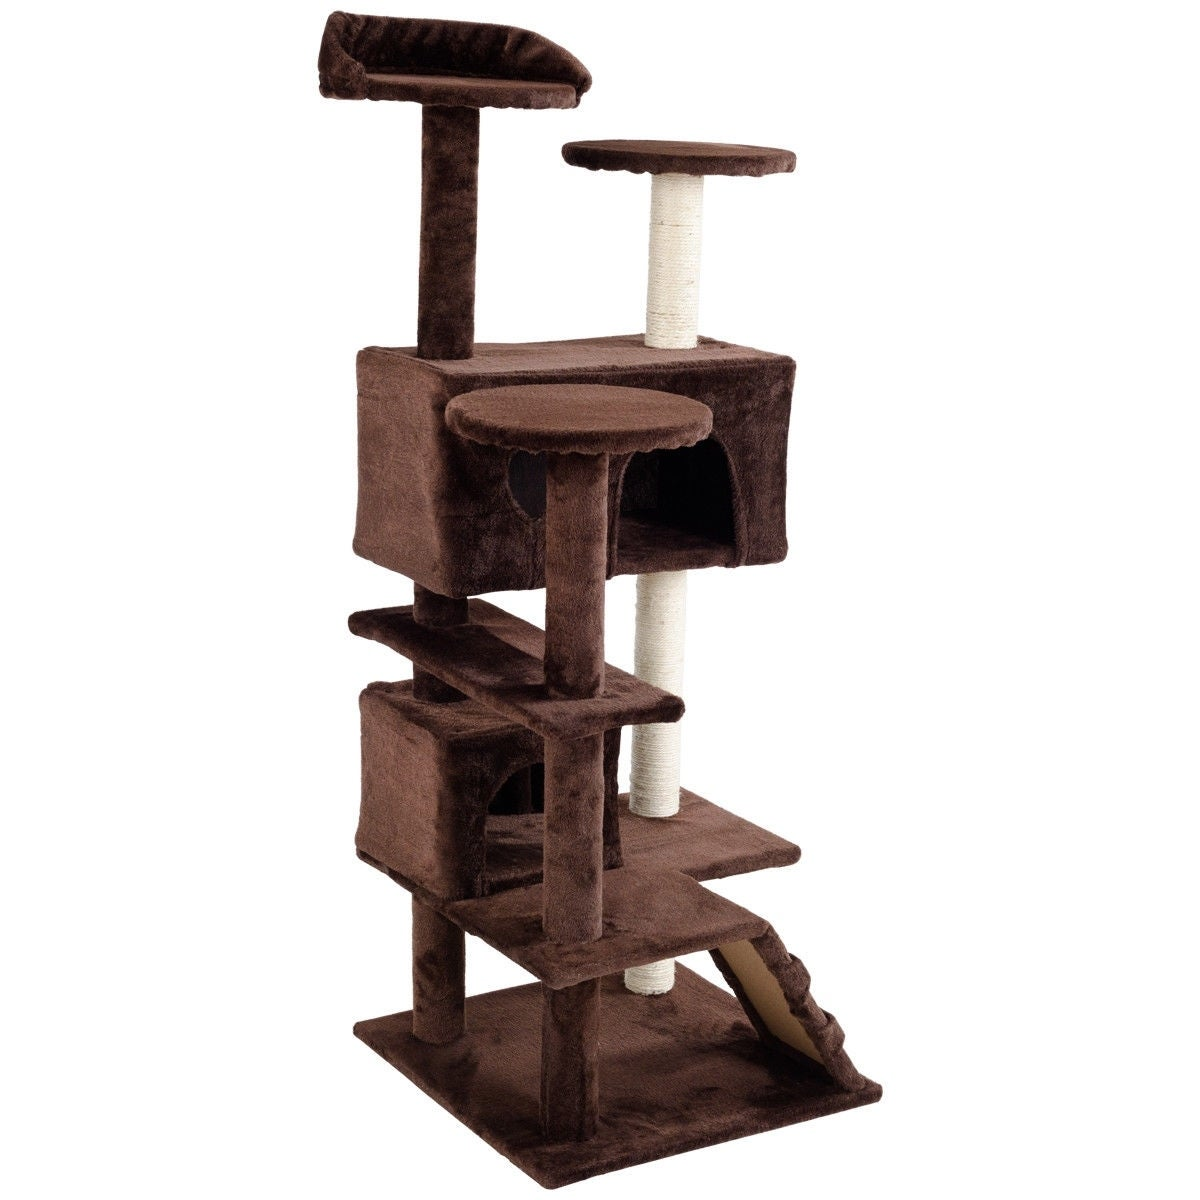 52 Cat Scratching Post and Ladder Kitten Tower Tree -Coffee